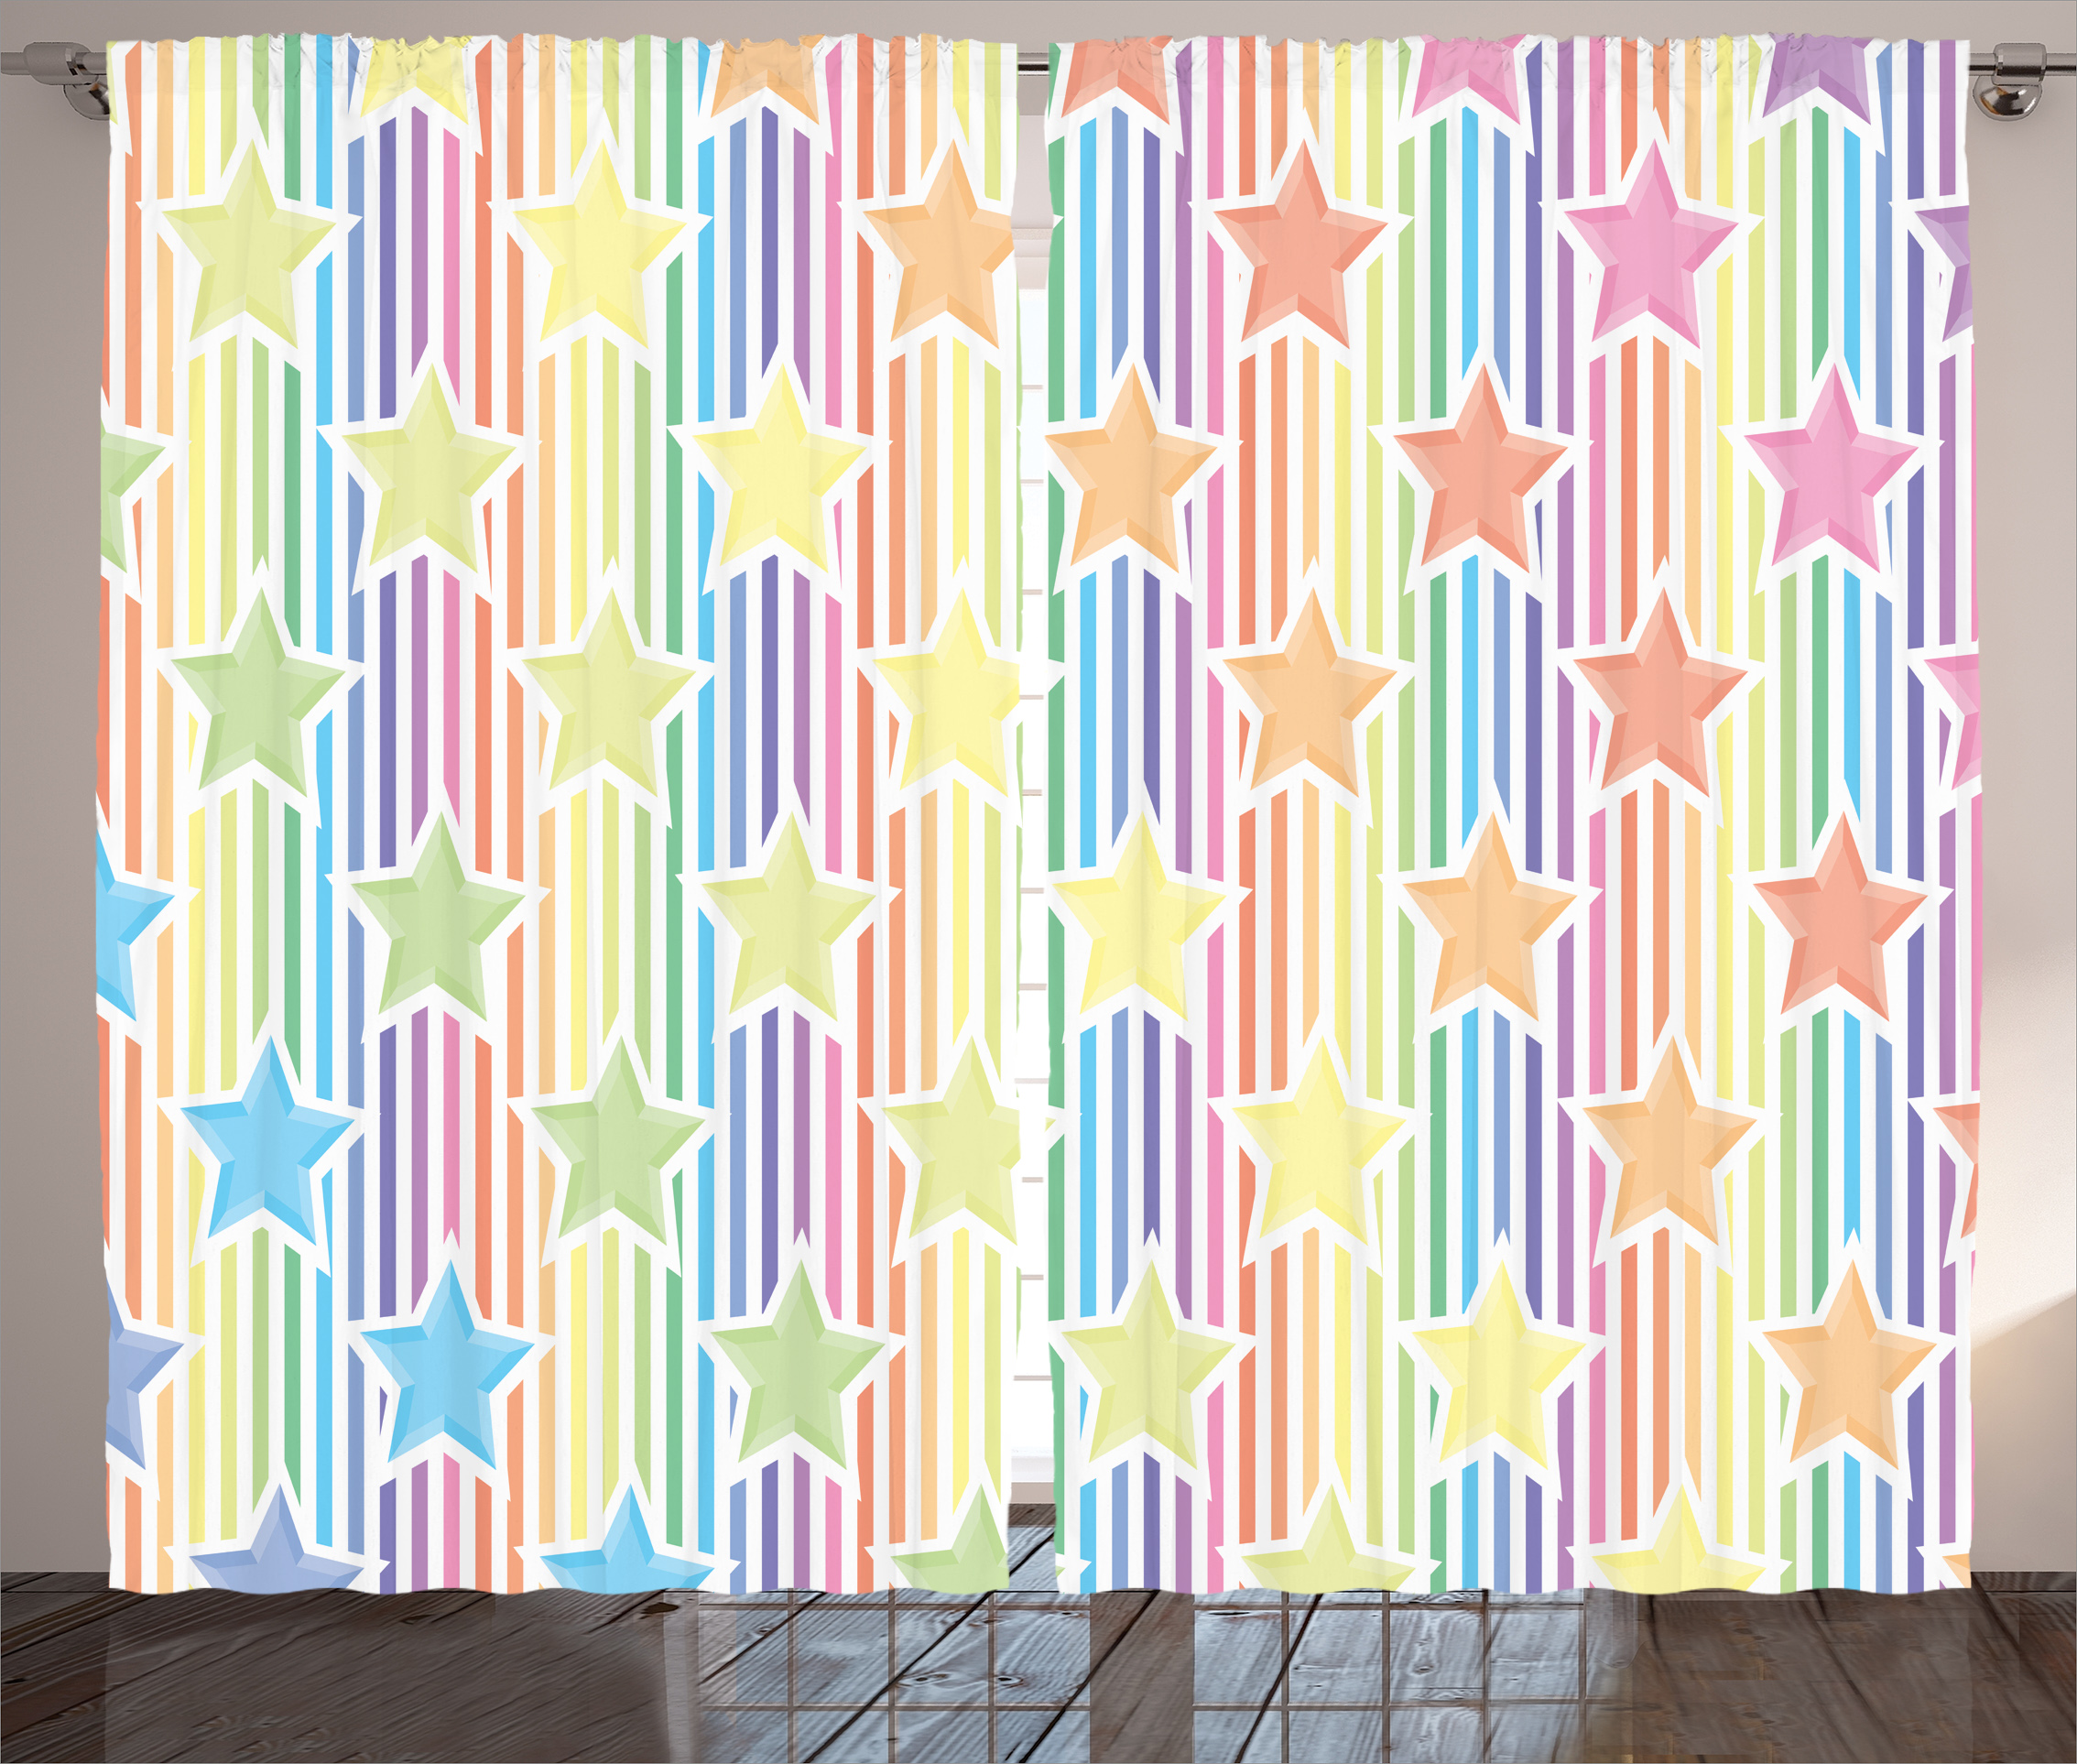 Remarkable House Decor Curtains 2 Panels Set Rainbow Stars On Colorful Striped Fun Art Abstract Teen Room Playroom Concept Window Drapes For Living Room Download Free Architecture Designs Ogrambritishbridgeorg